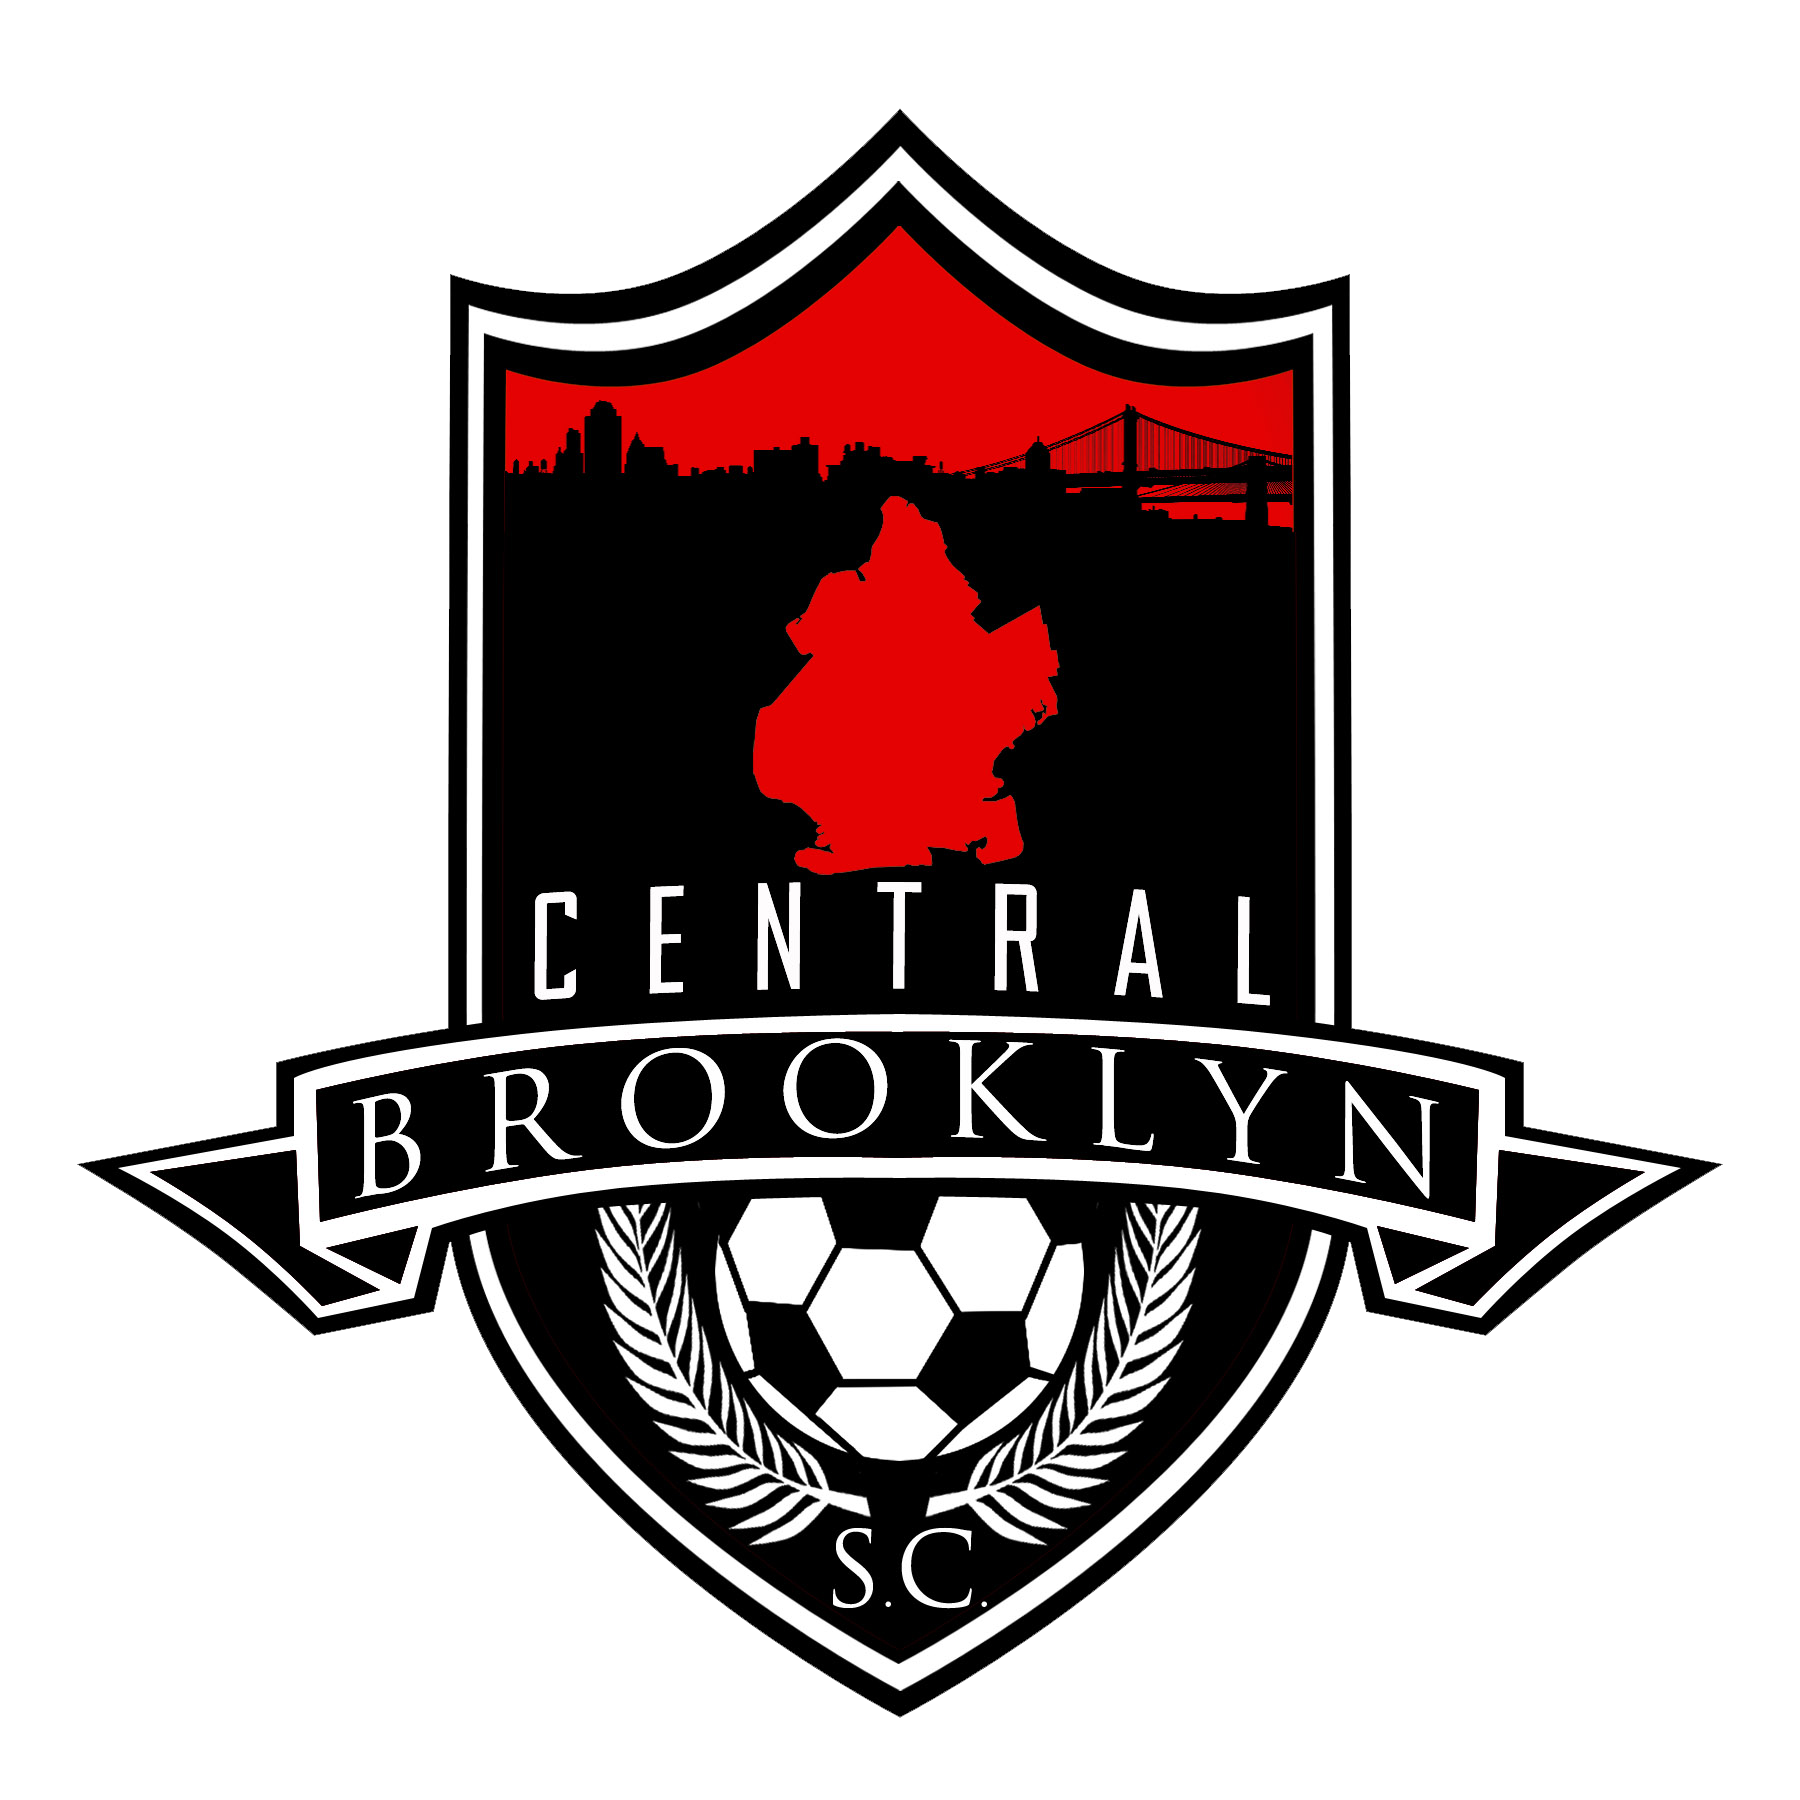 Central Brooklyn Soccer Club